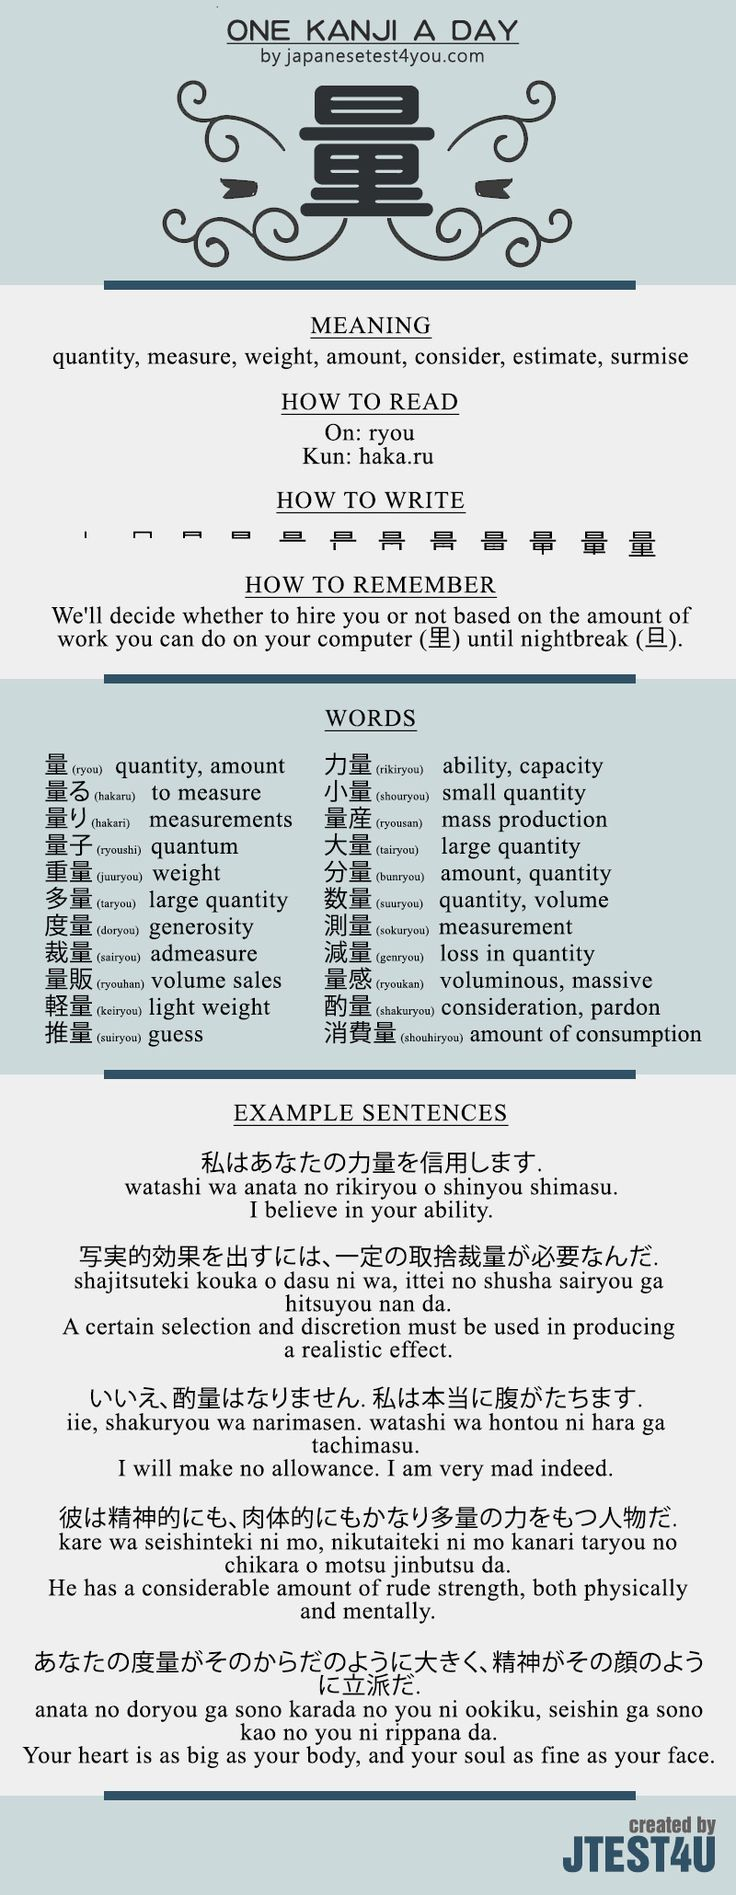 Learn one Kanji a day with infographic - 量 (ryou): http://japanesetest4you.com/learn-one-kanji-a-day-with-infographic-%e9%87%8f-ryou/